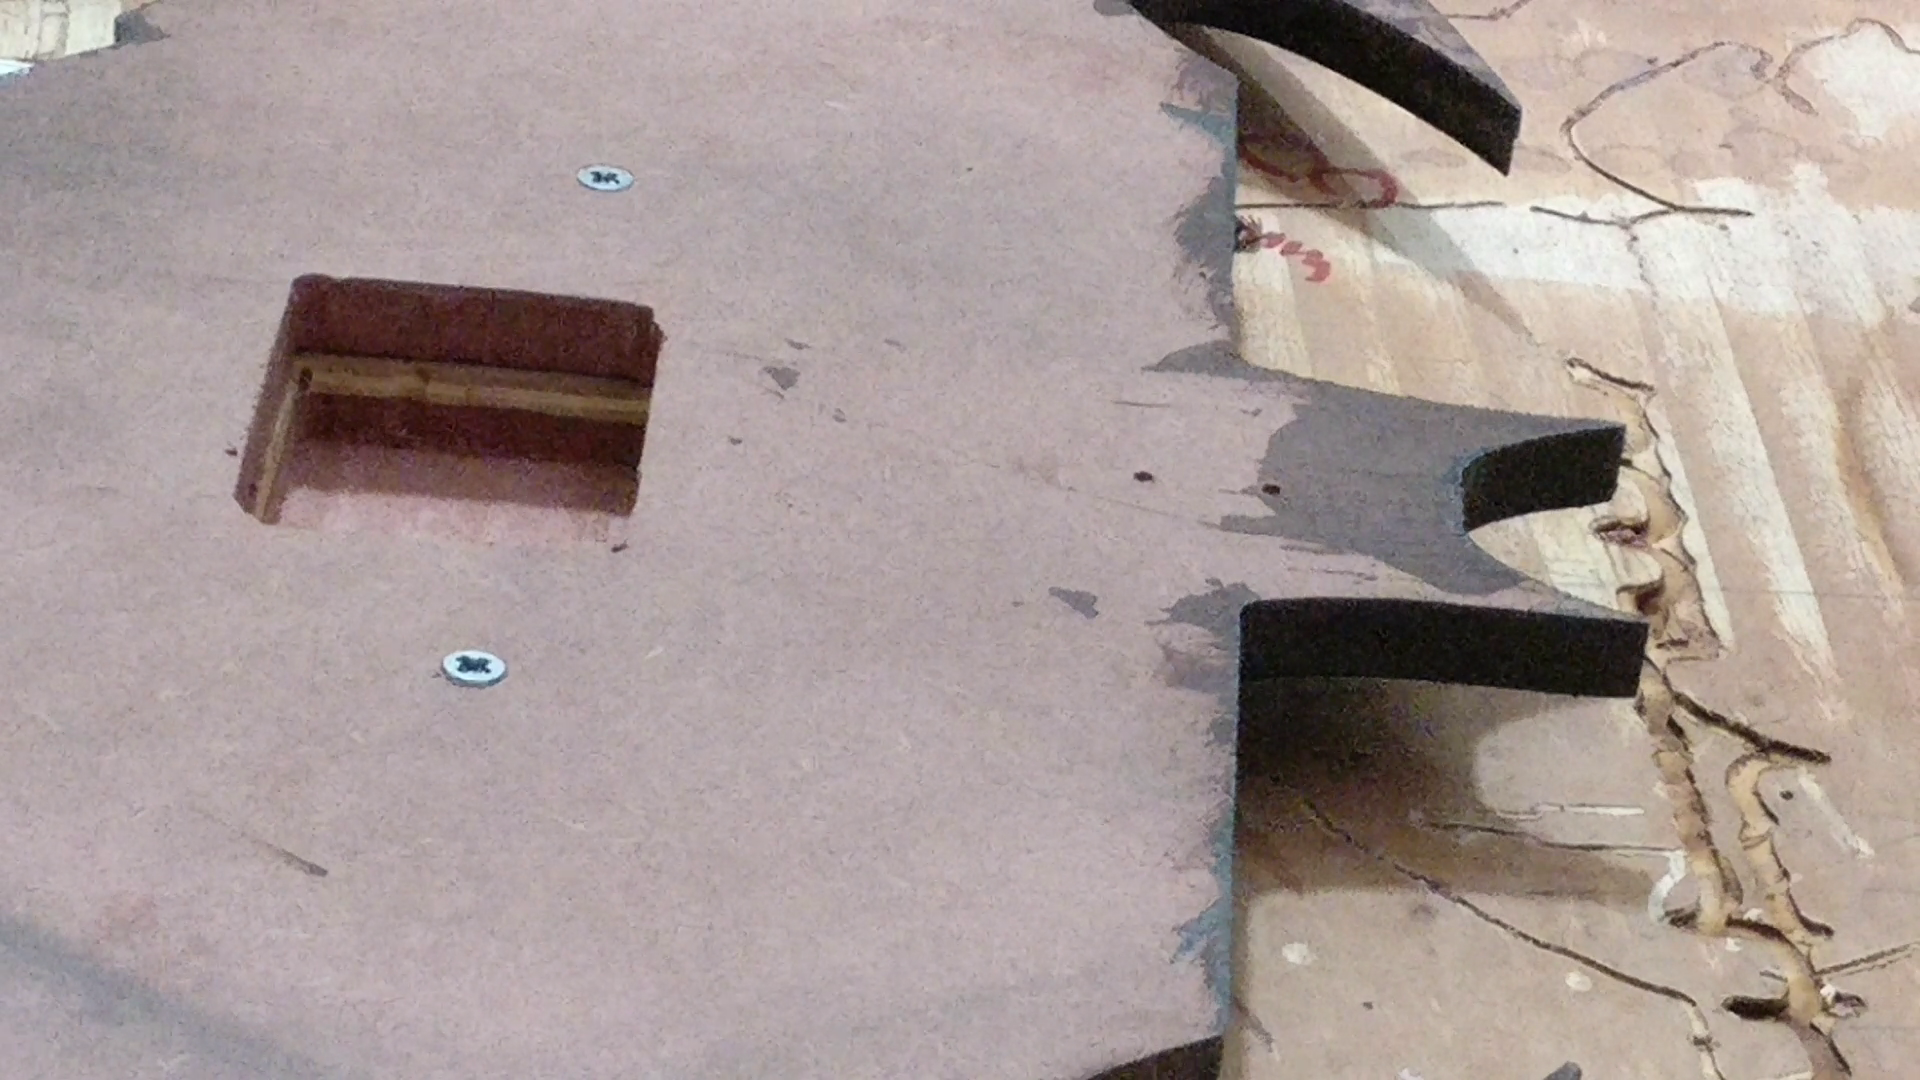 Picture of Machining at the Back for Clock Movement and Hardware Attachment for Hanging.